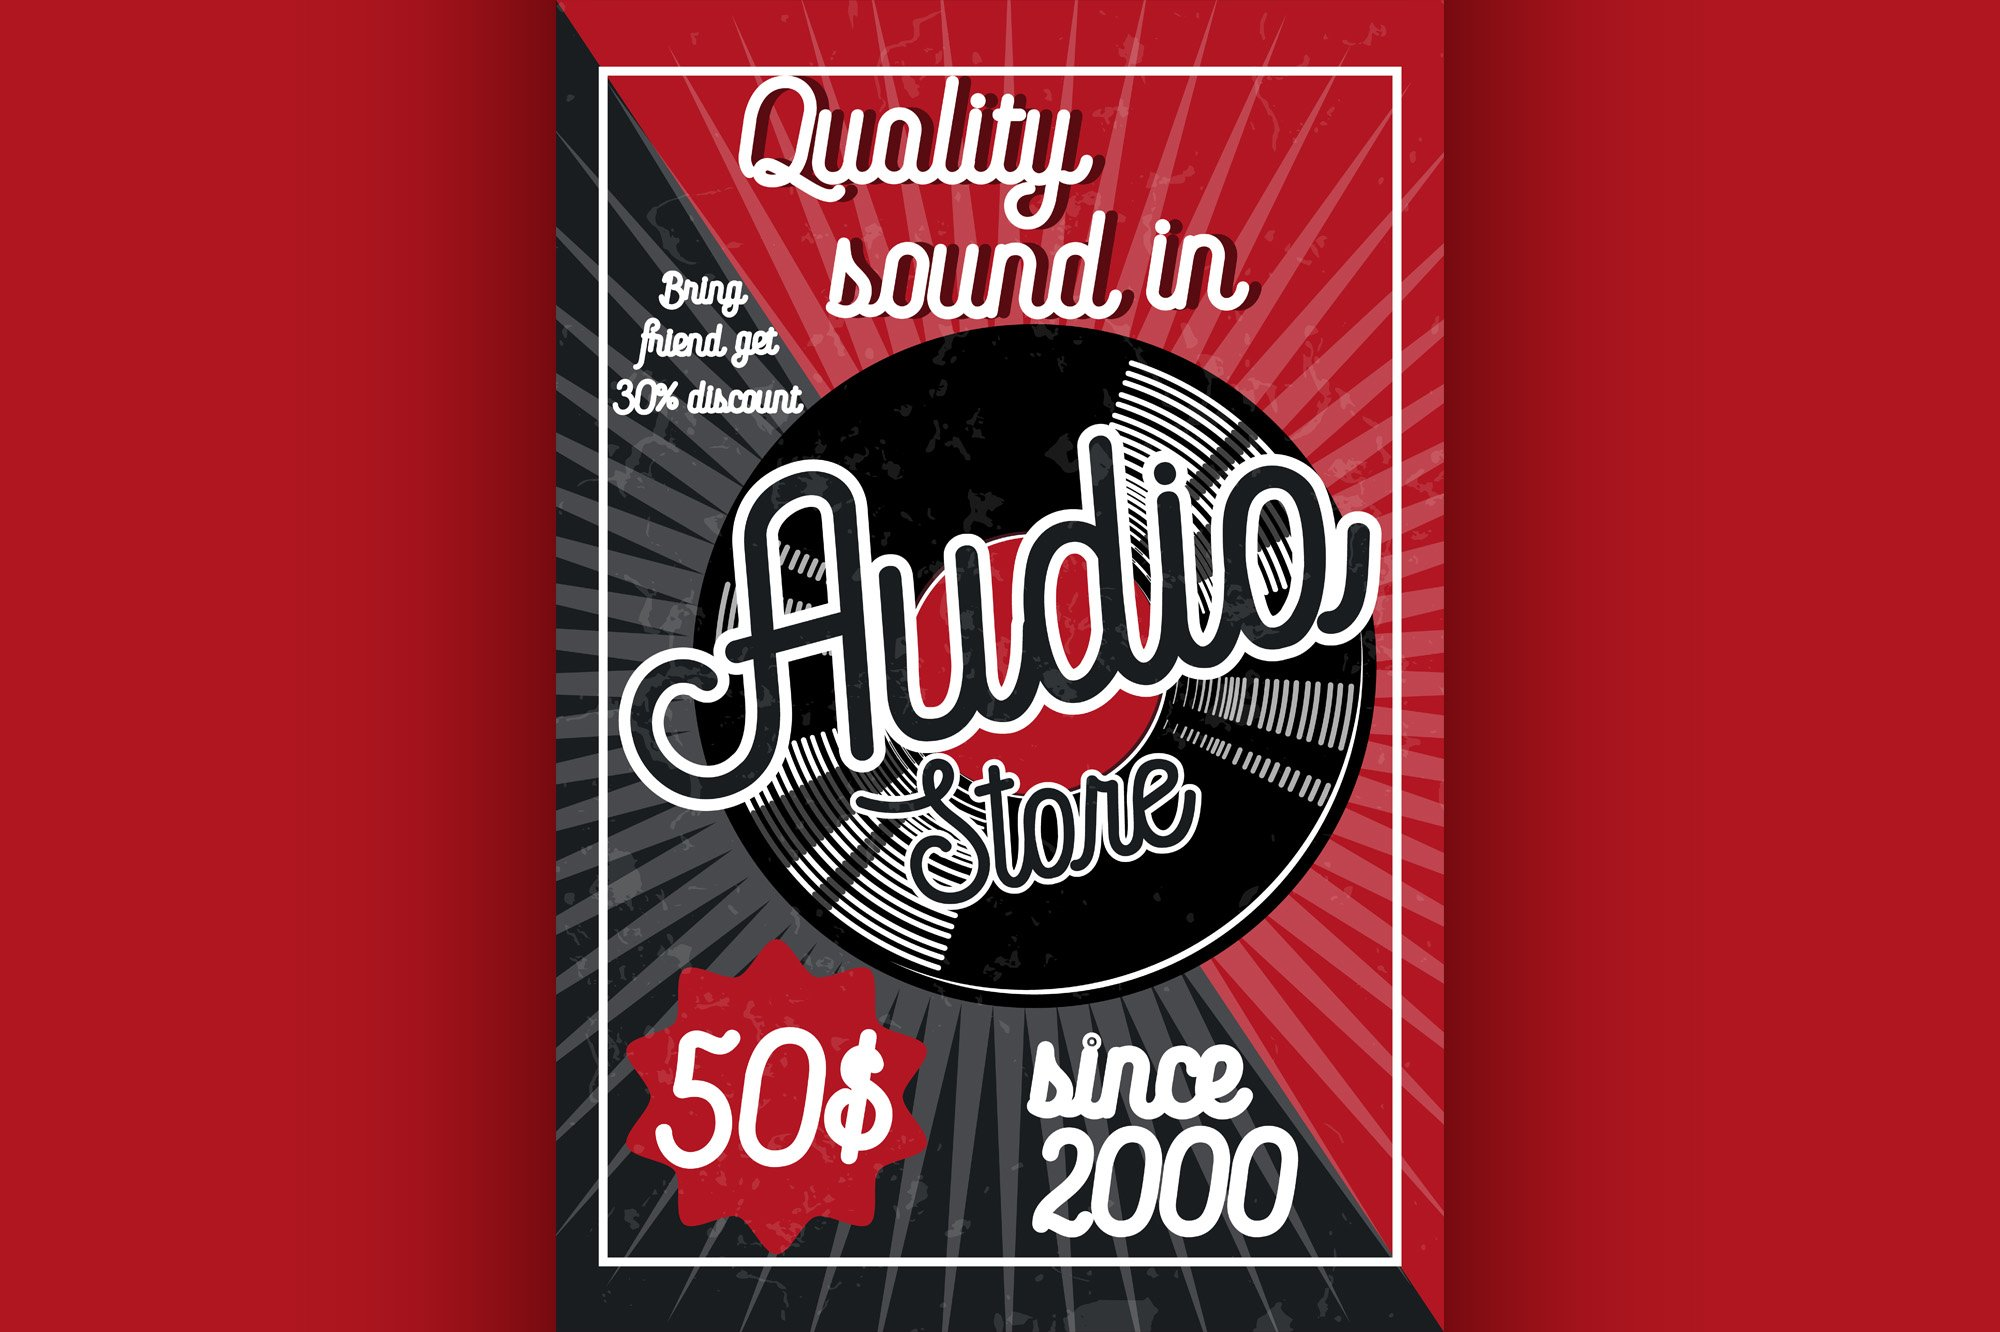 Vintage audio store poster example image 1